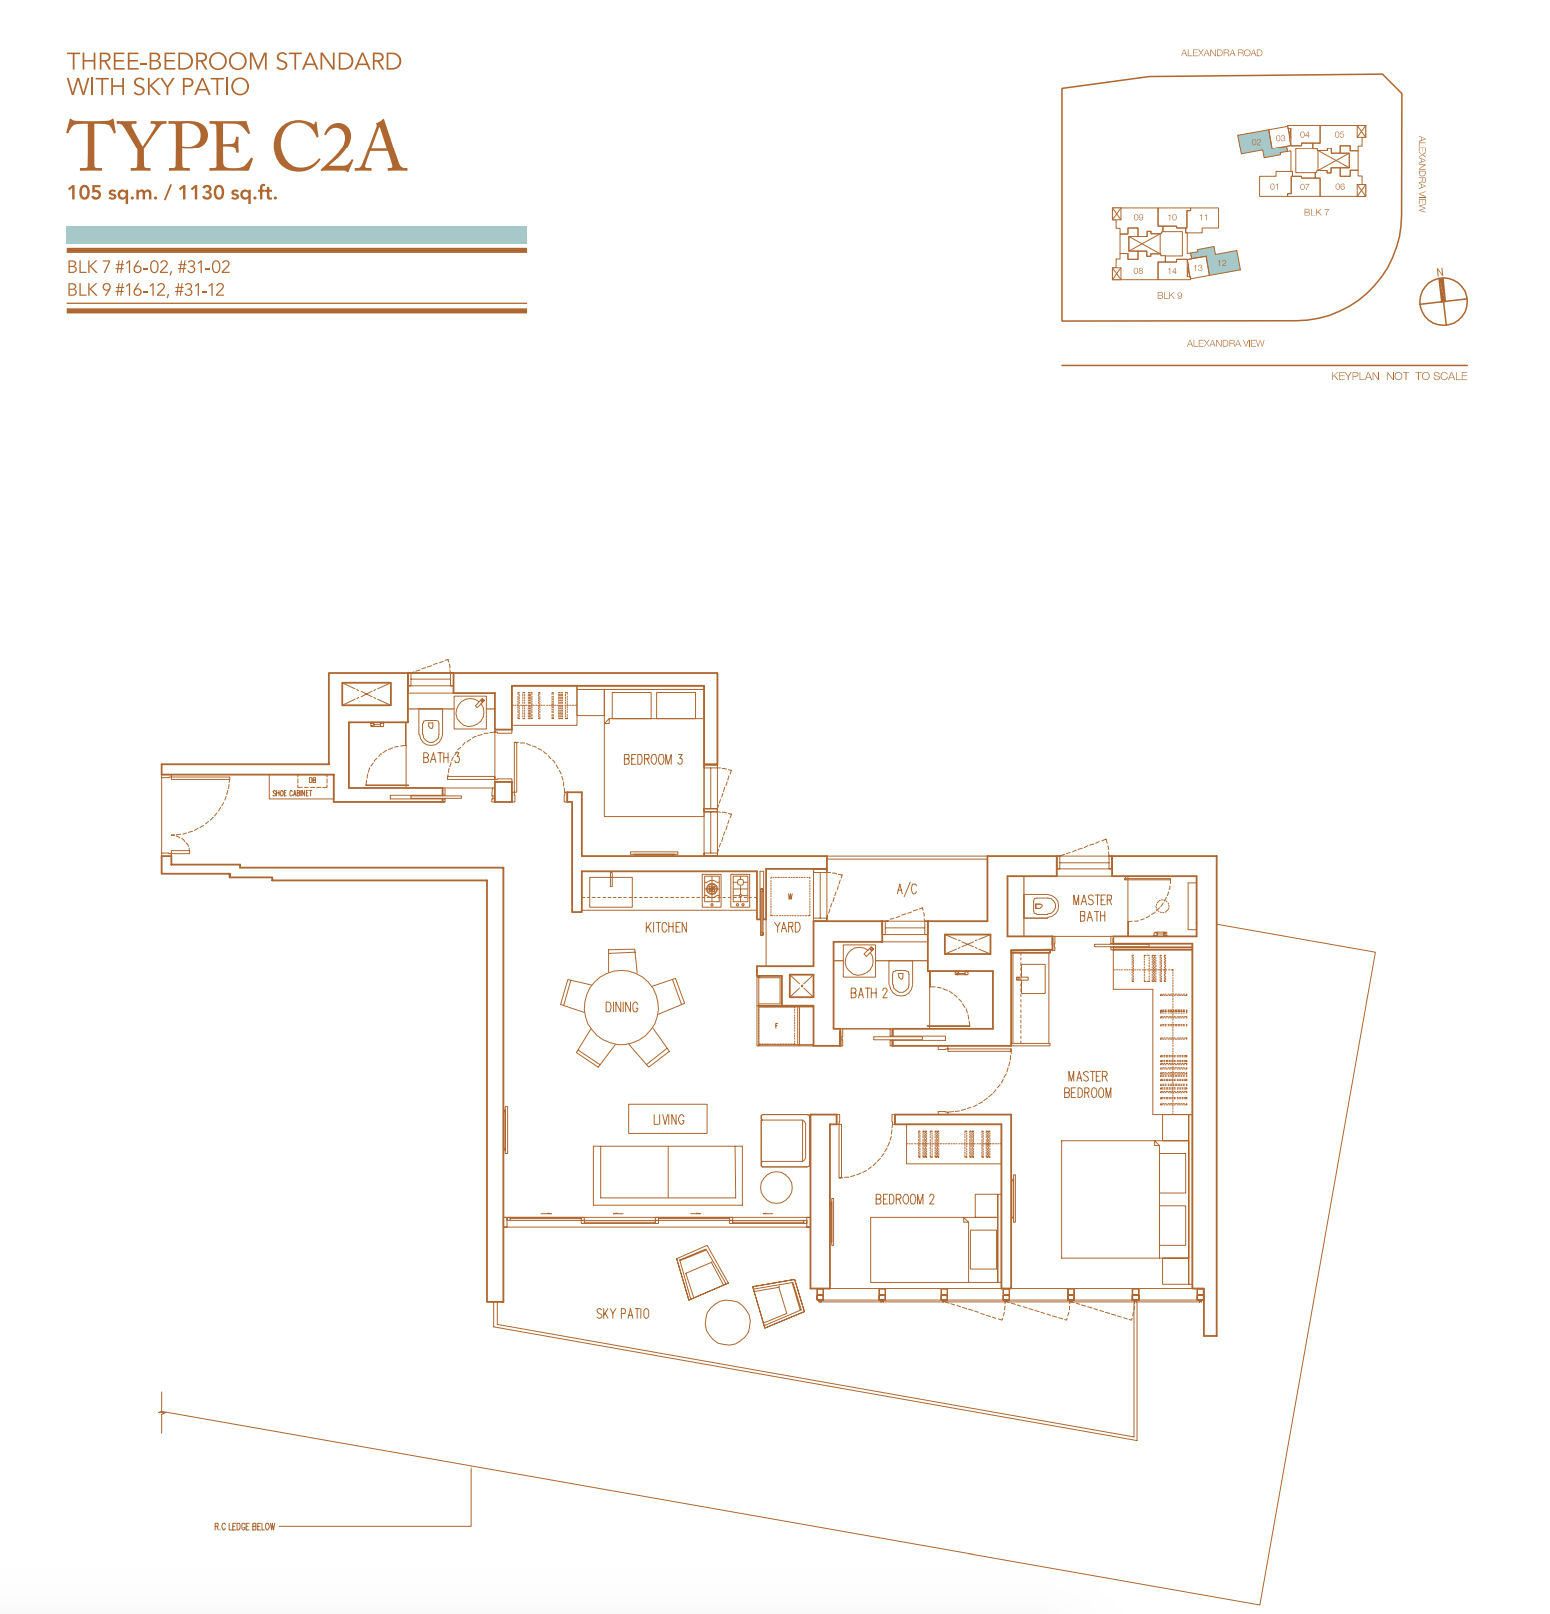 echelon condo 3 bedroom layout